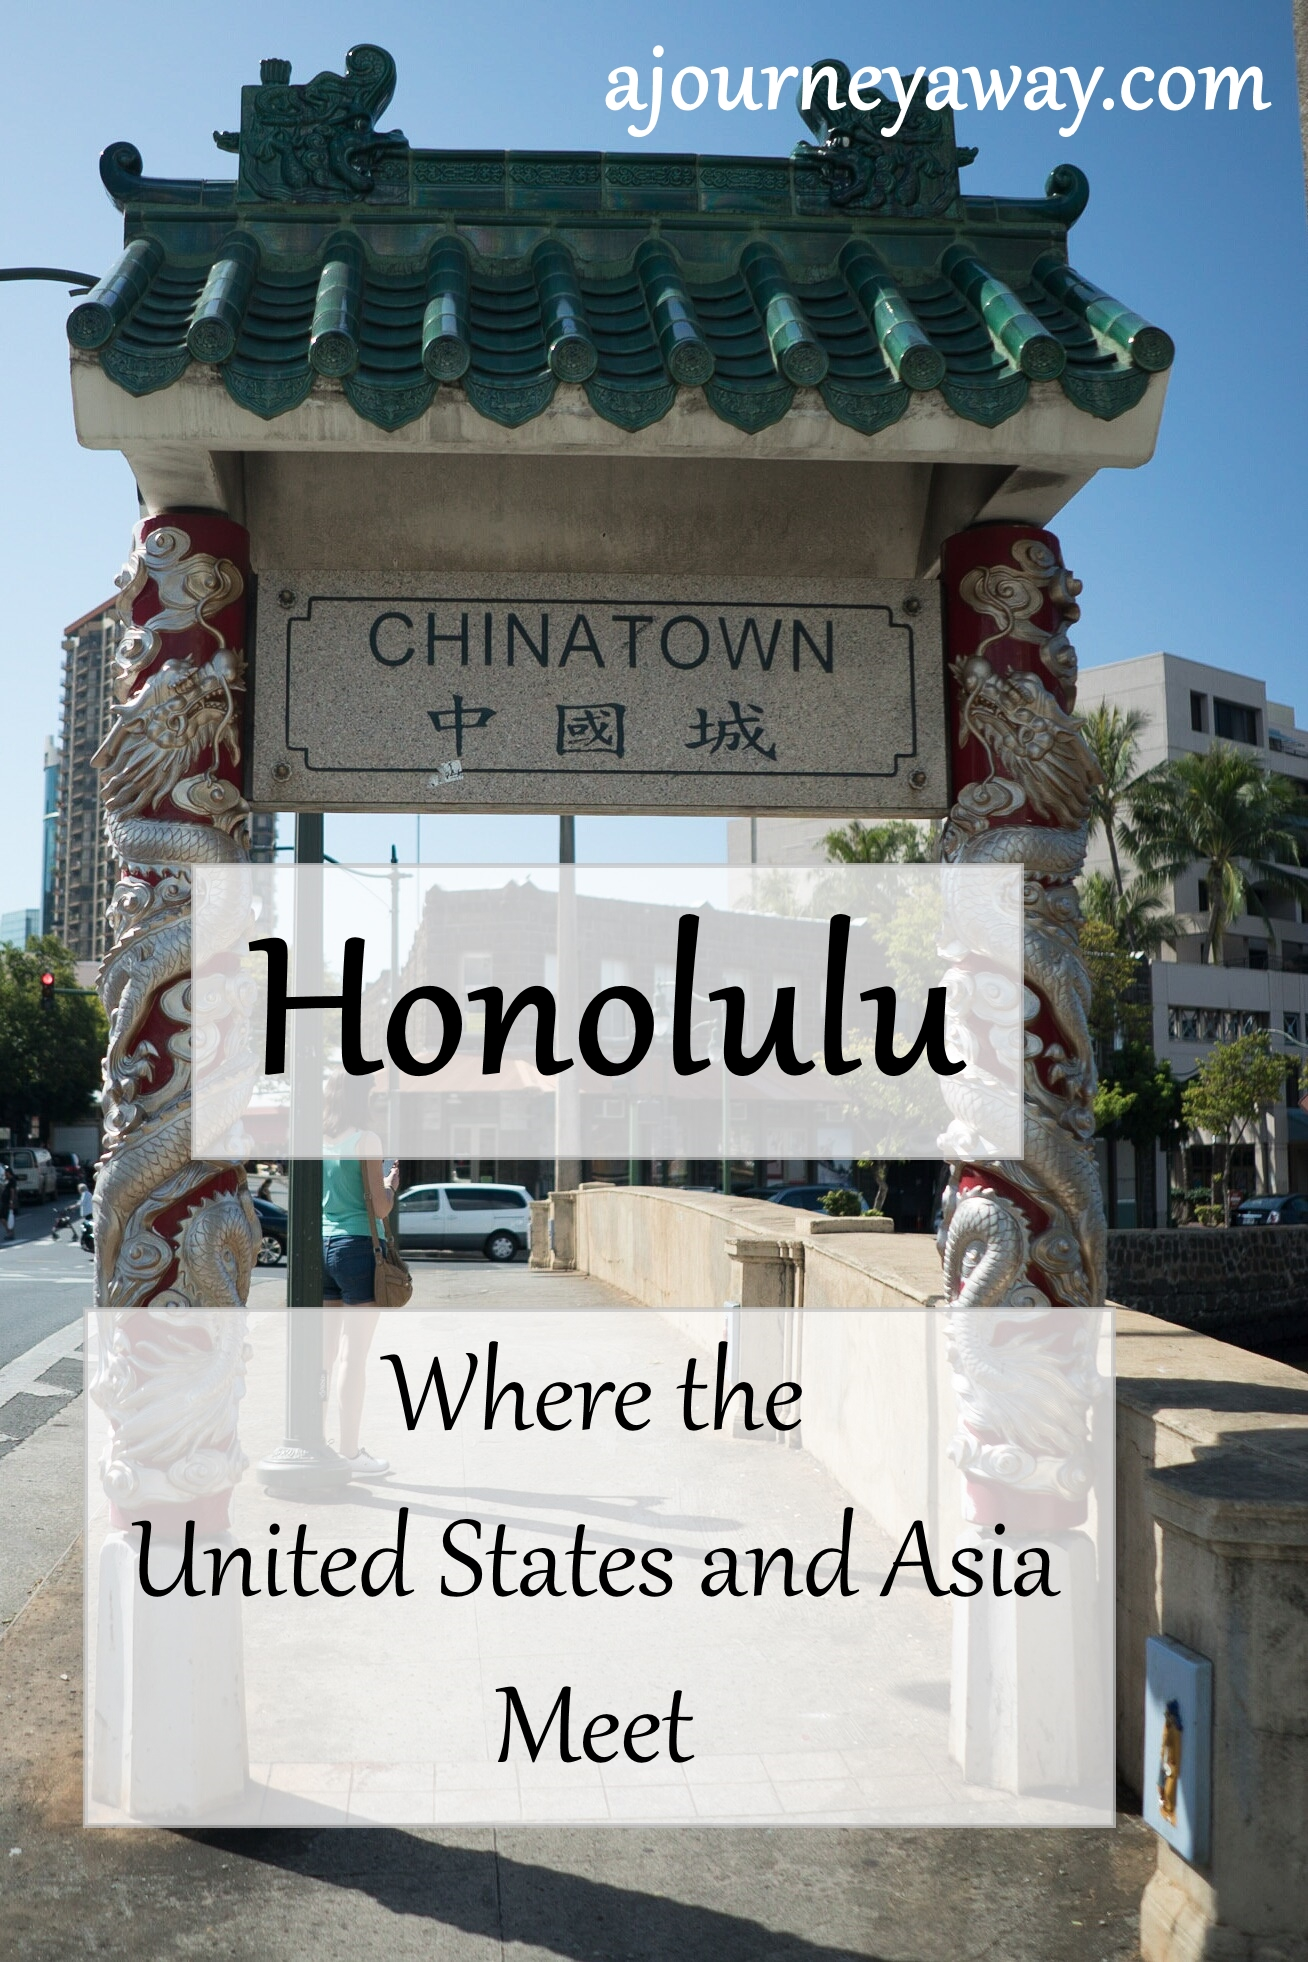 Honolulu: Where the United States and Asia Meet